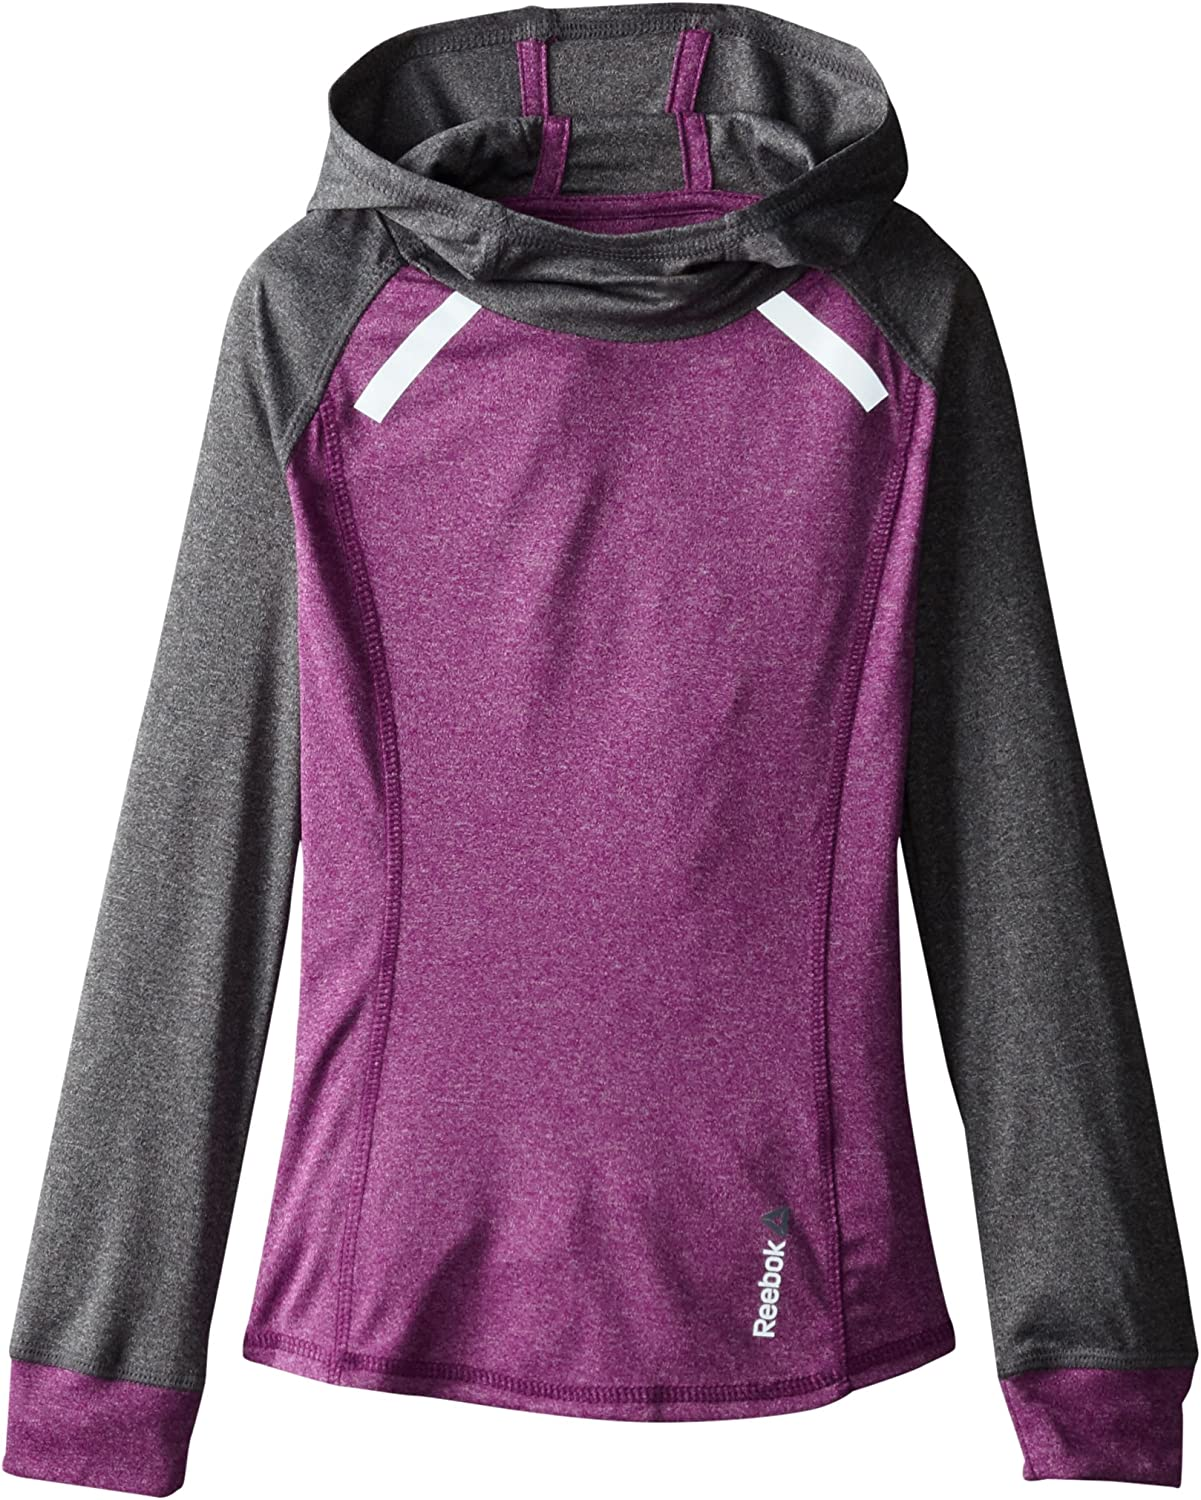 Reebok Girls' Mixed Heather Popover Hooded Top